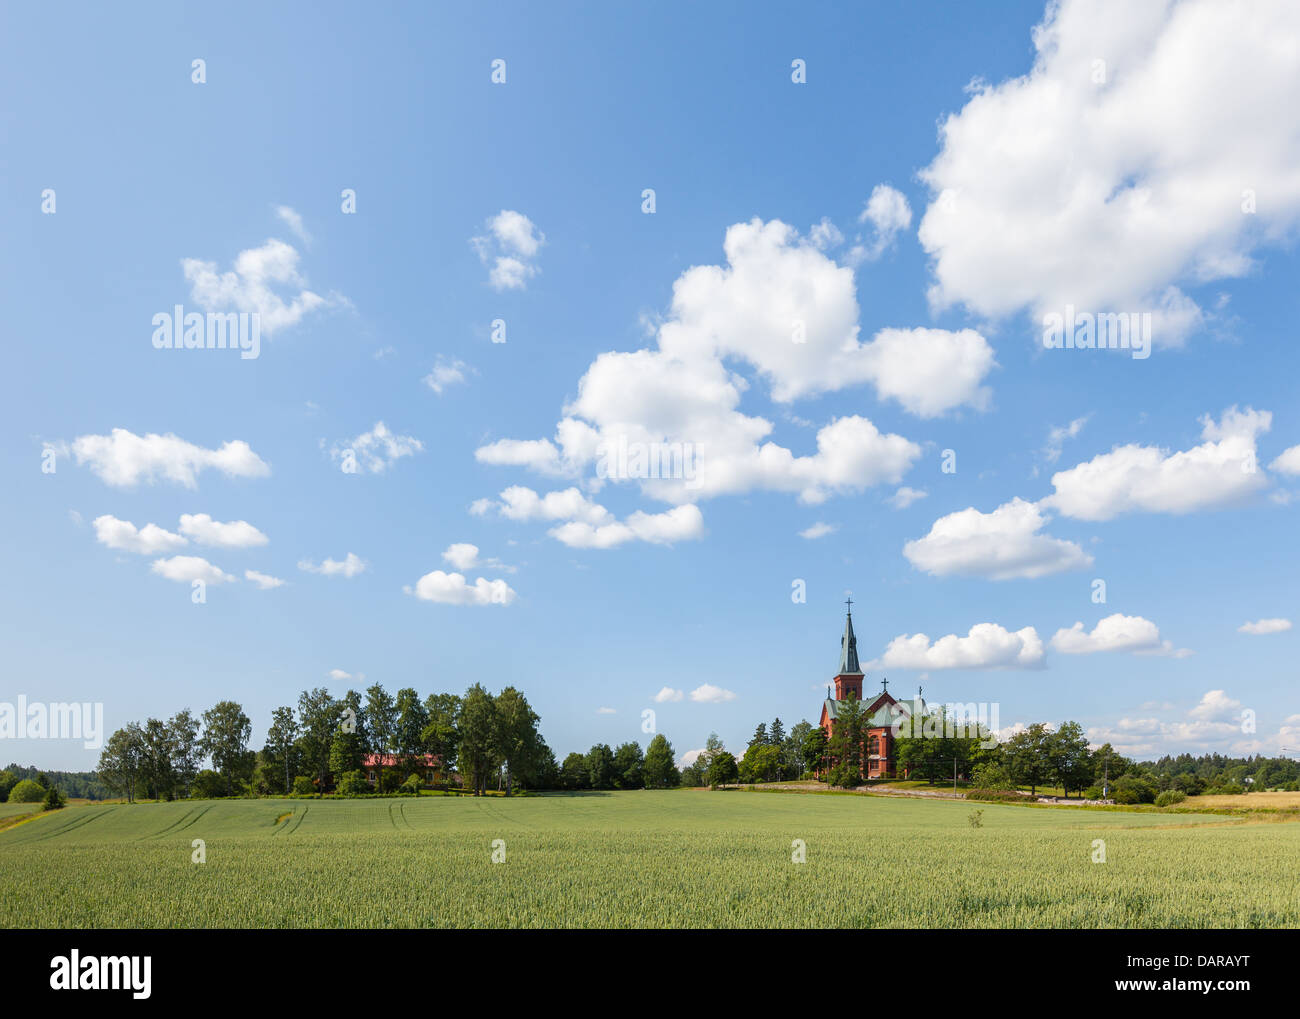 Summery view of Sipoo, Finland - Stock Image